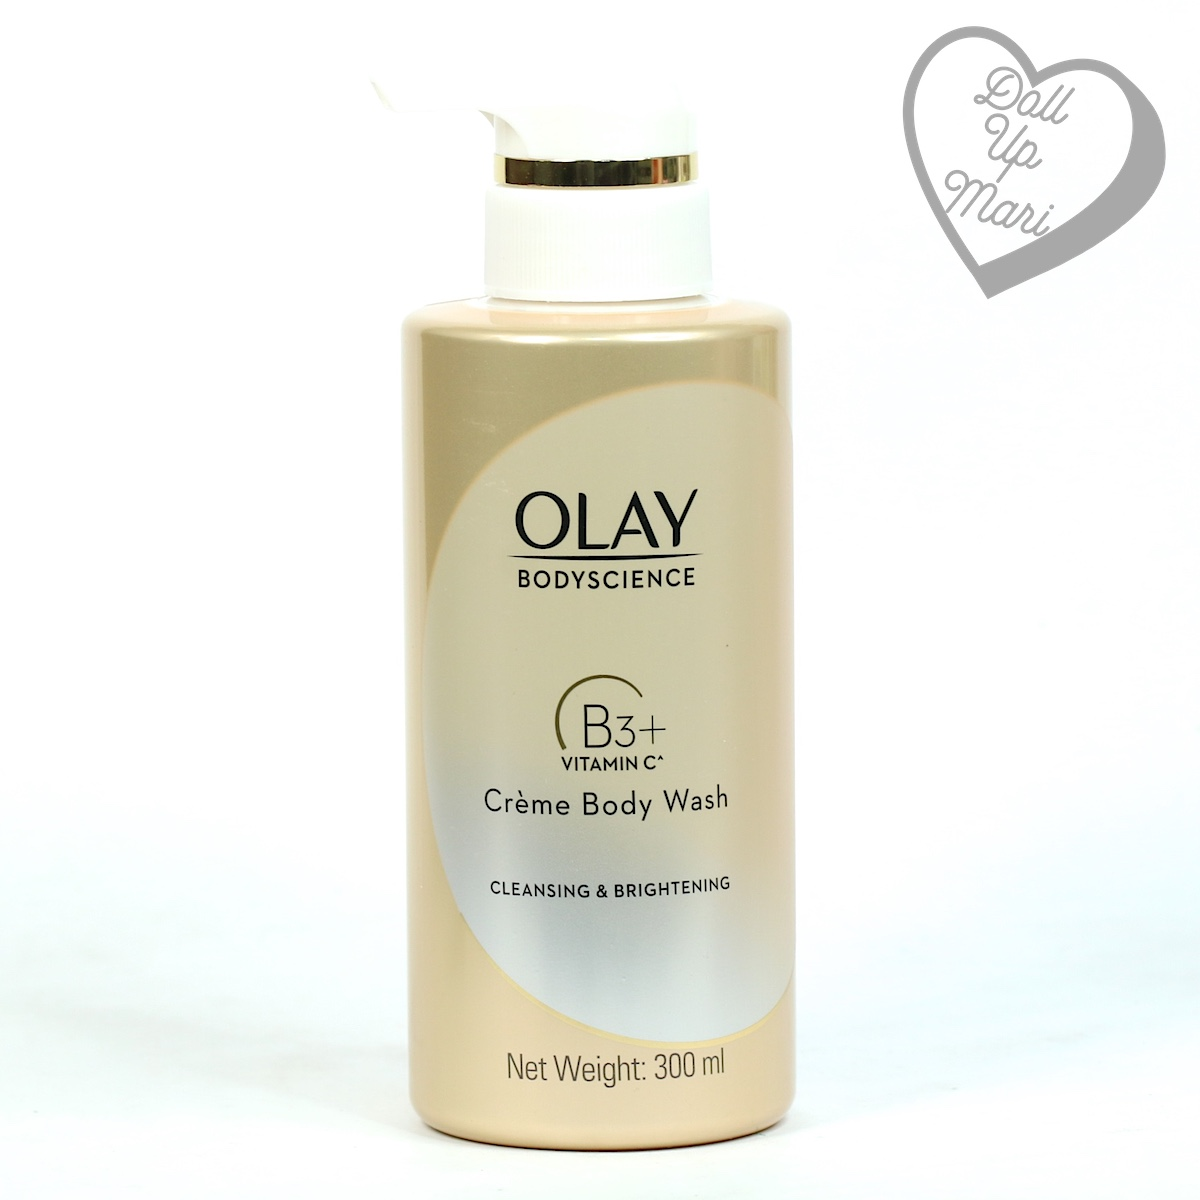 Olay BodyScience Crème Body Wash Cleansing and Brightening with Vitamin C Pack shot